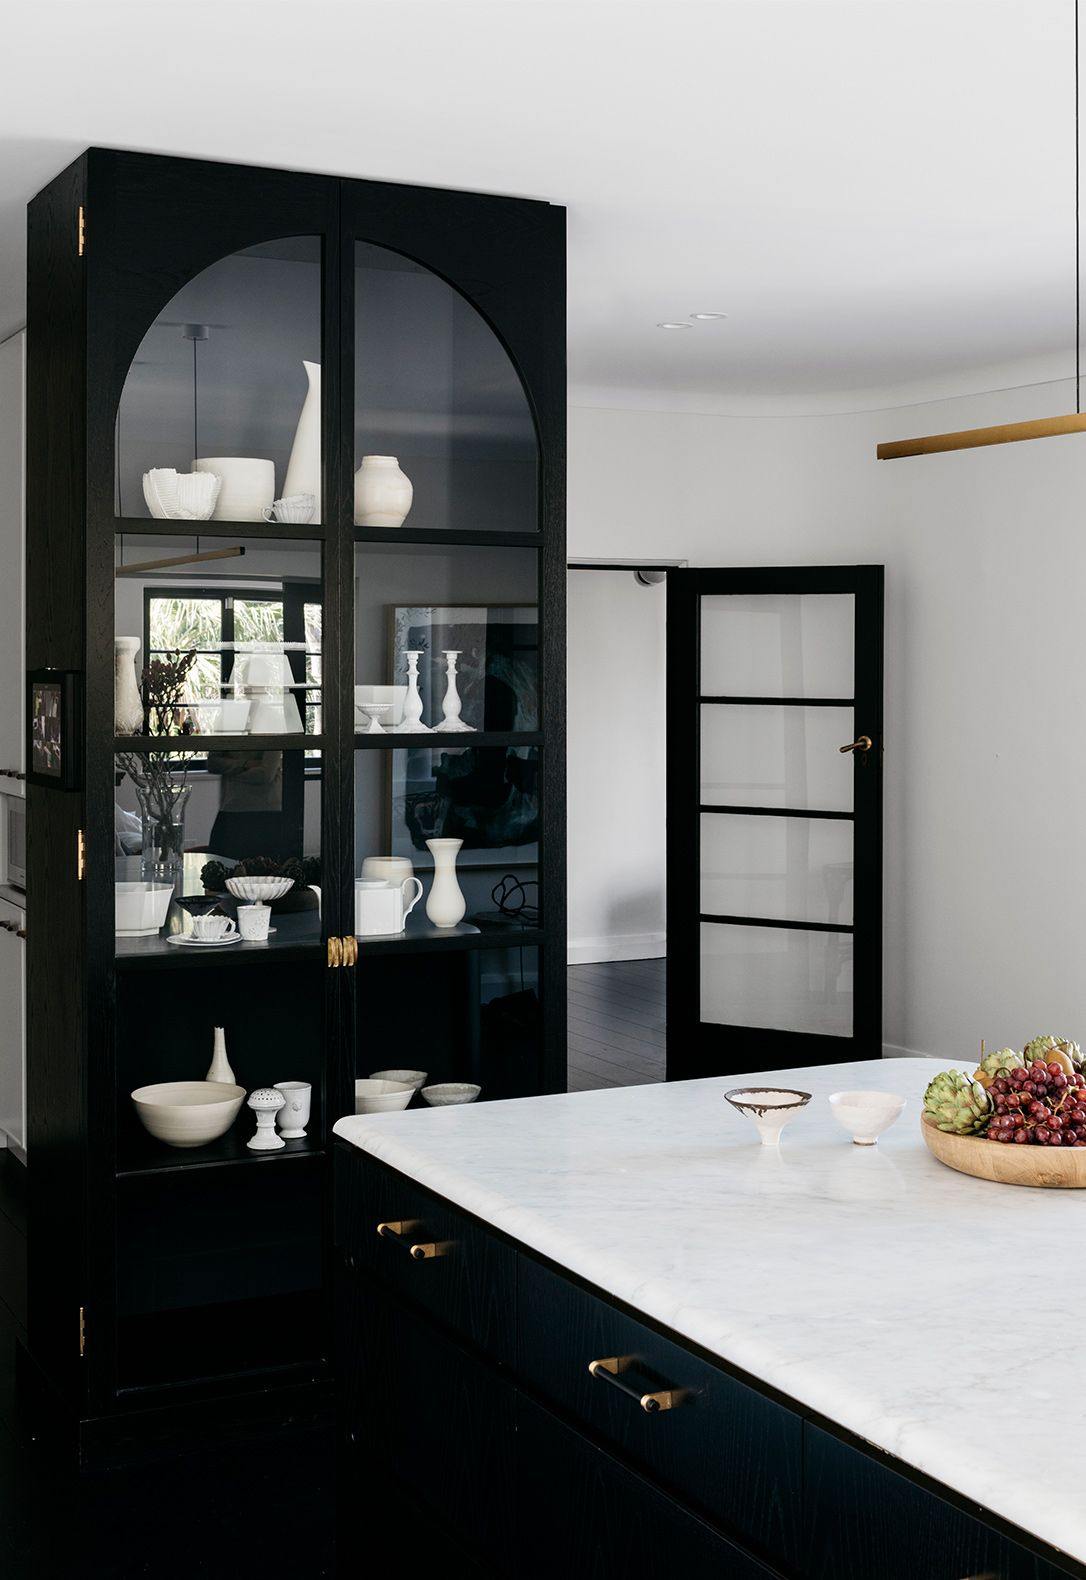 Arent Pyke Again Bliss Kitchen Cabinet Design Glass Cabinet Doors Kitchen Cabinet Styles